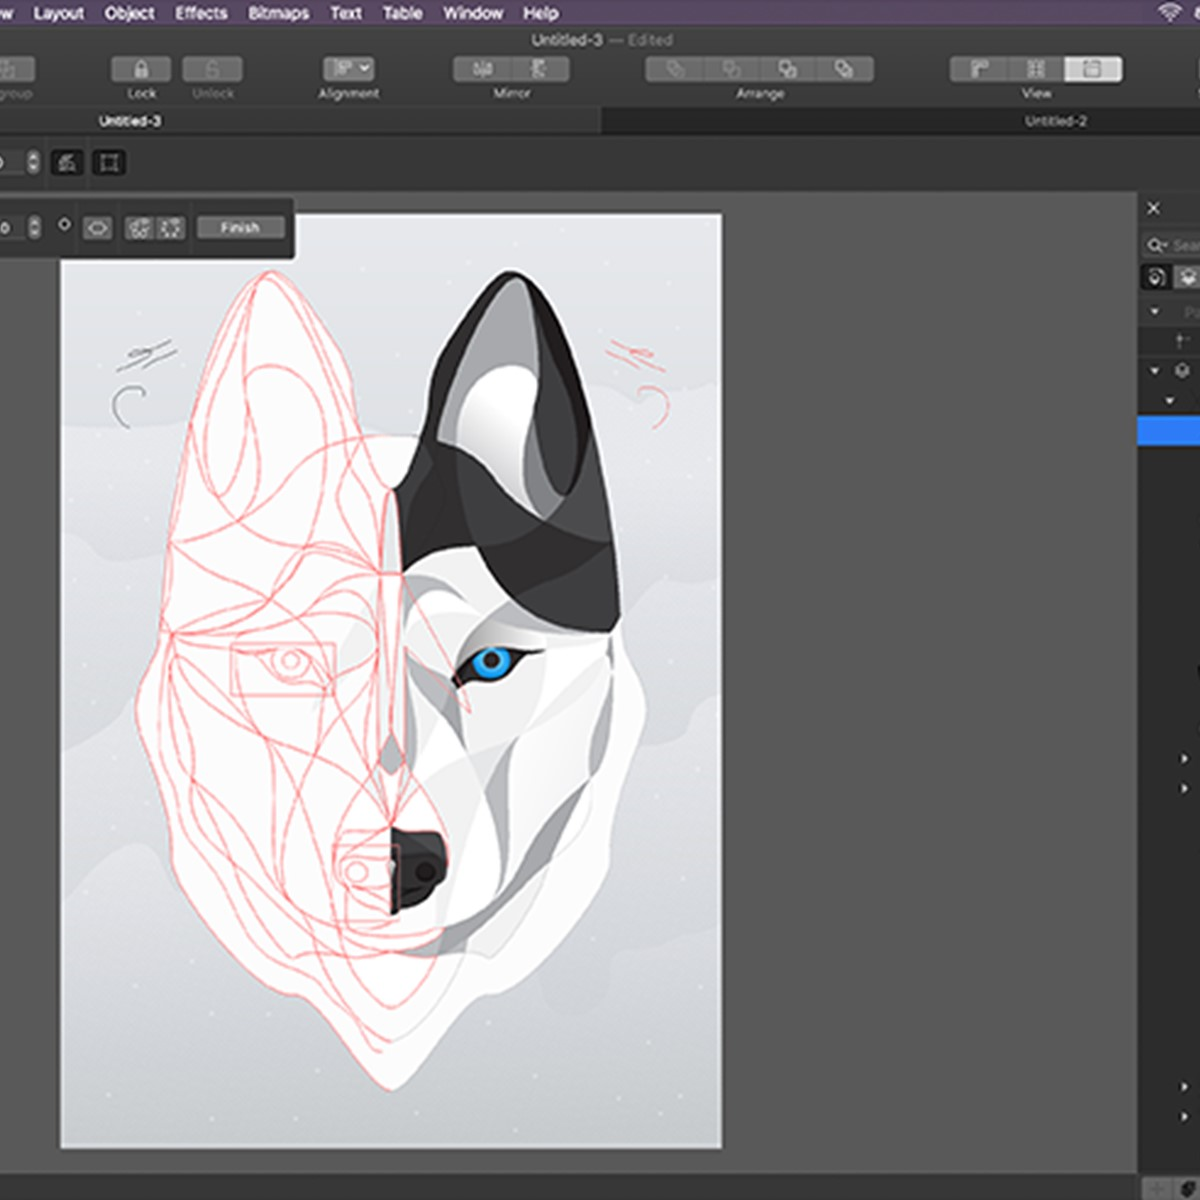 CorelDRAW Graphics Suite Alternatives for iPad